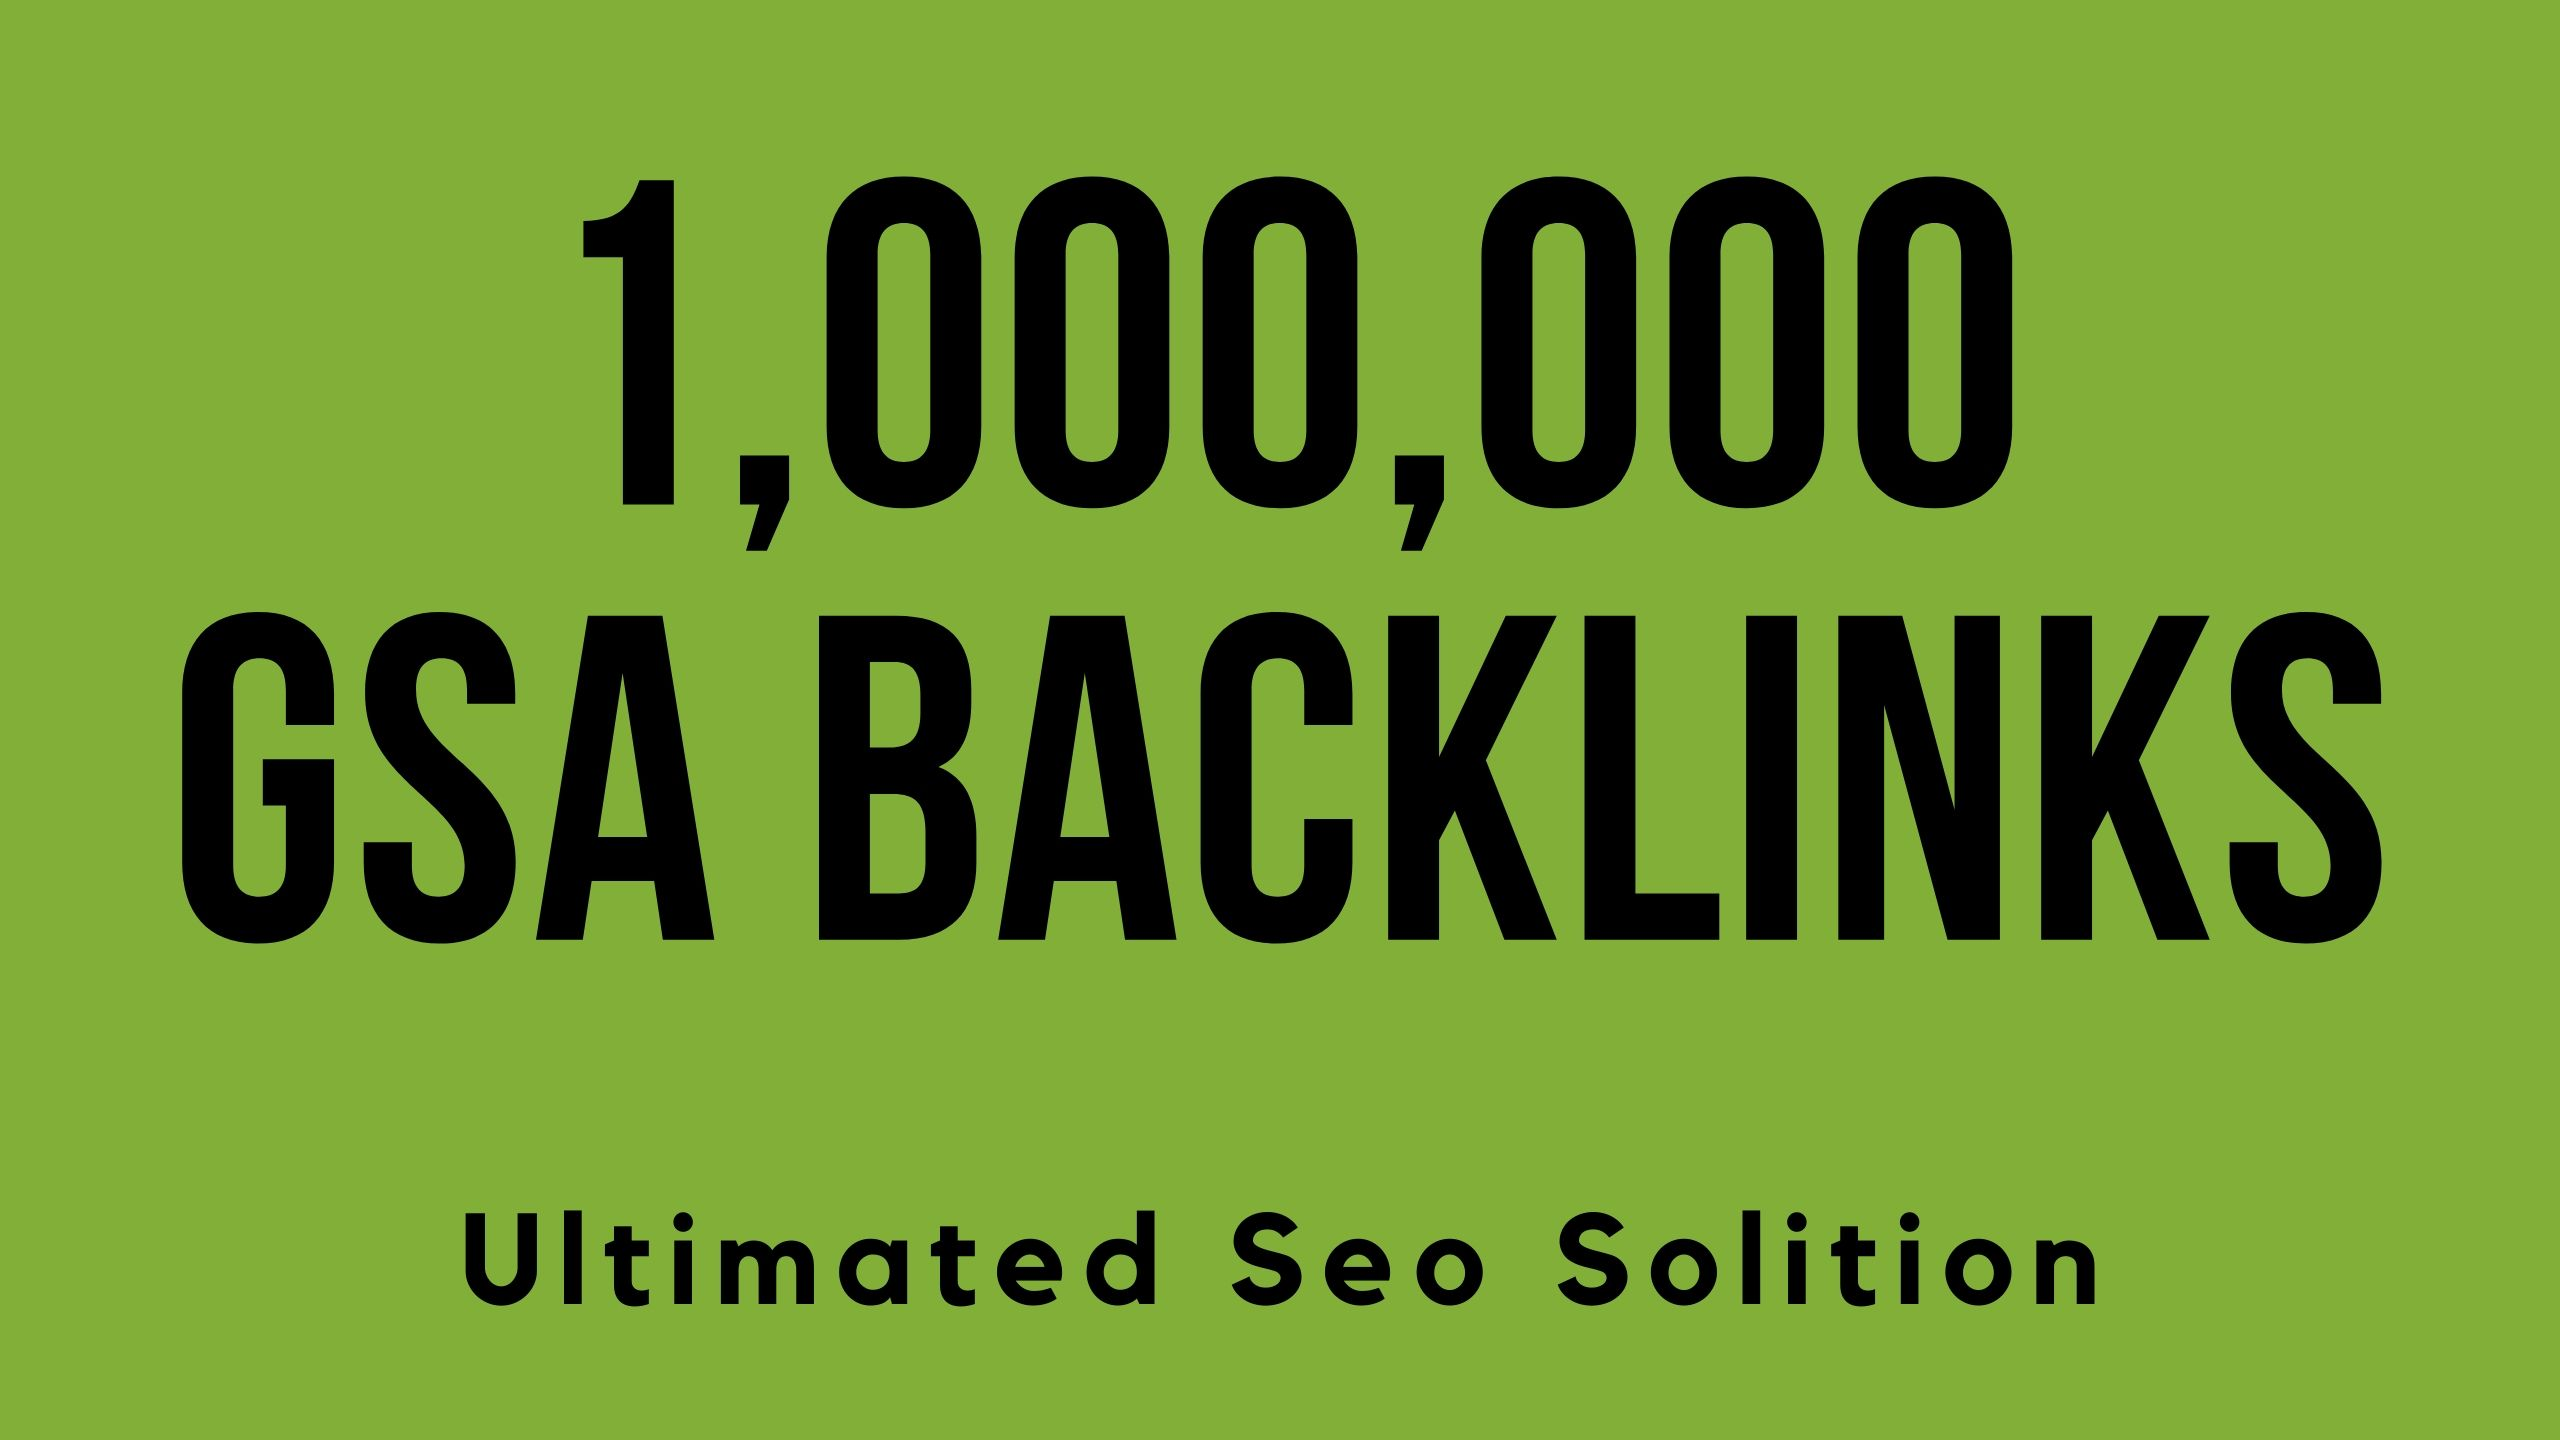 I will build 1 million gsa ser live backlinks for faster ranking on Google your web page